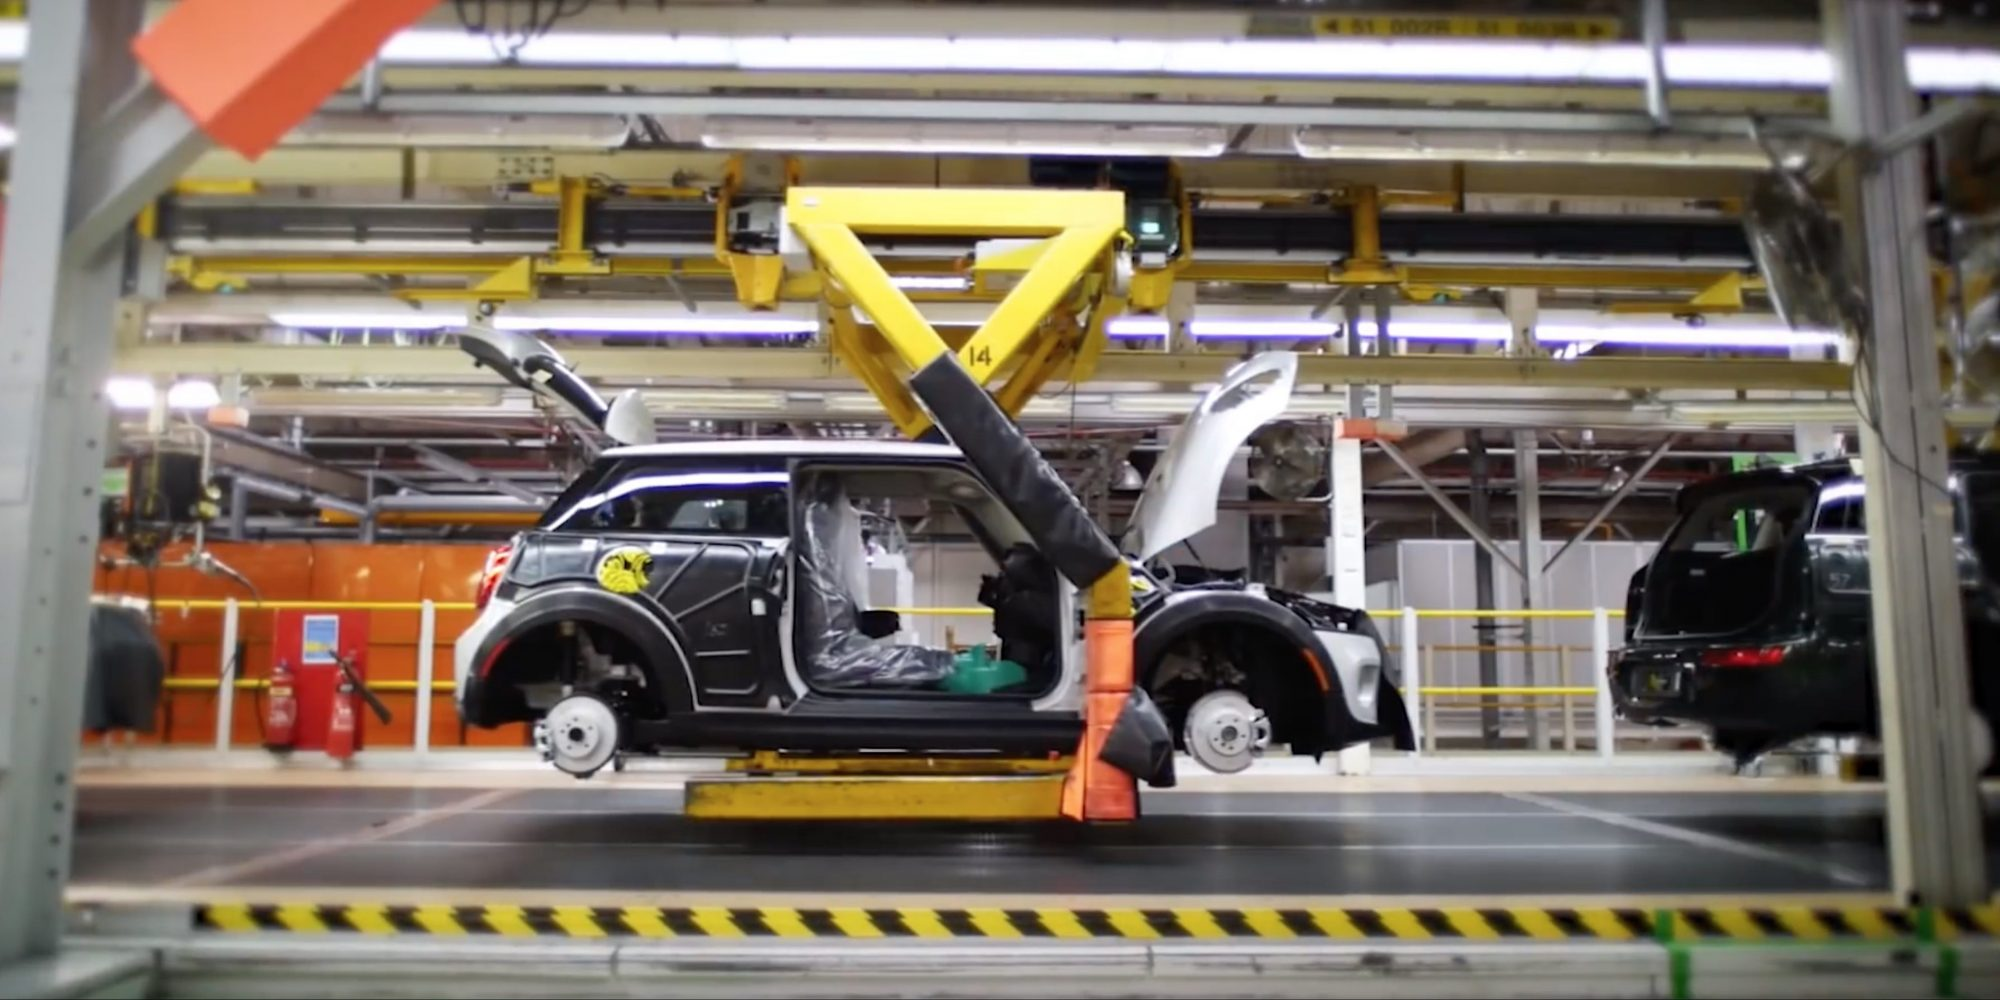 See the upcoming MINI Electric get assembled in this short production line video